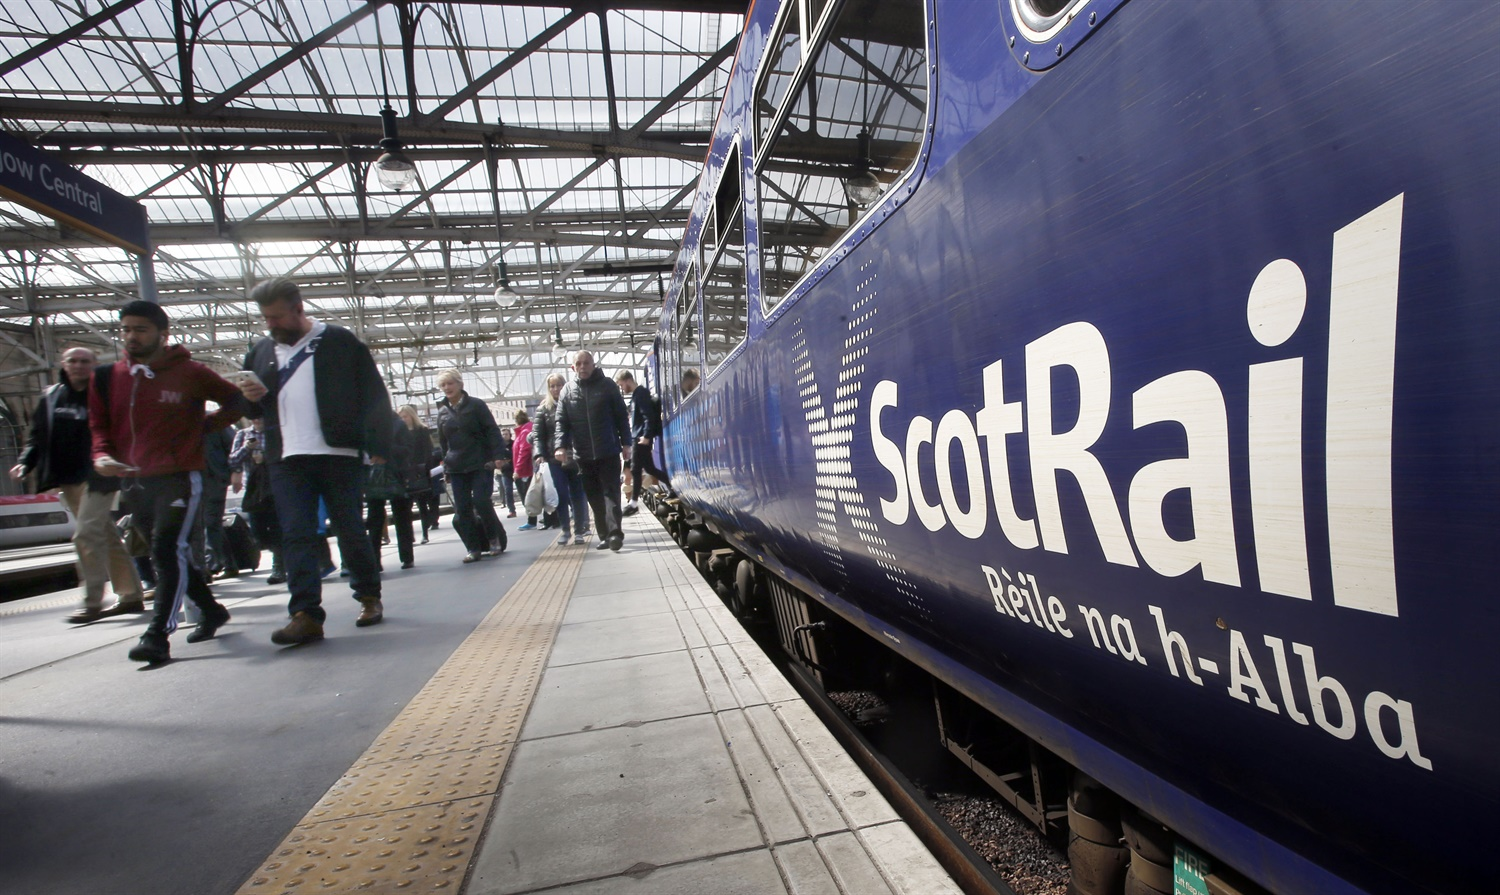 ScotRail's improvement plan spurs PPM turnaround after recent crisis